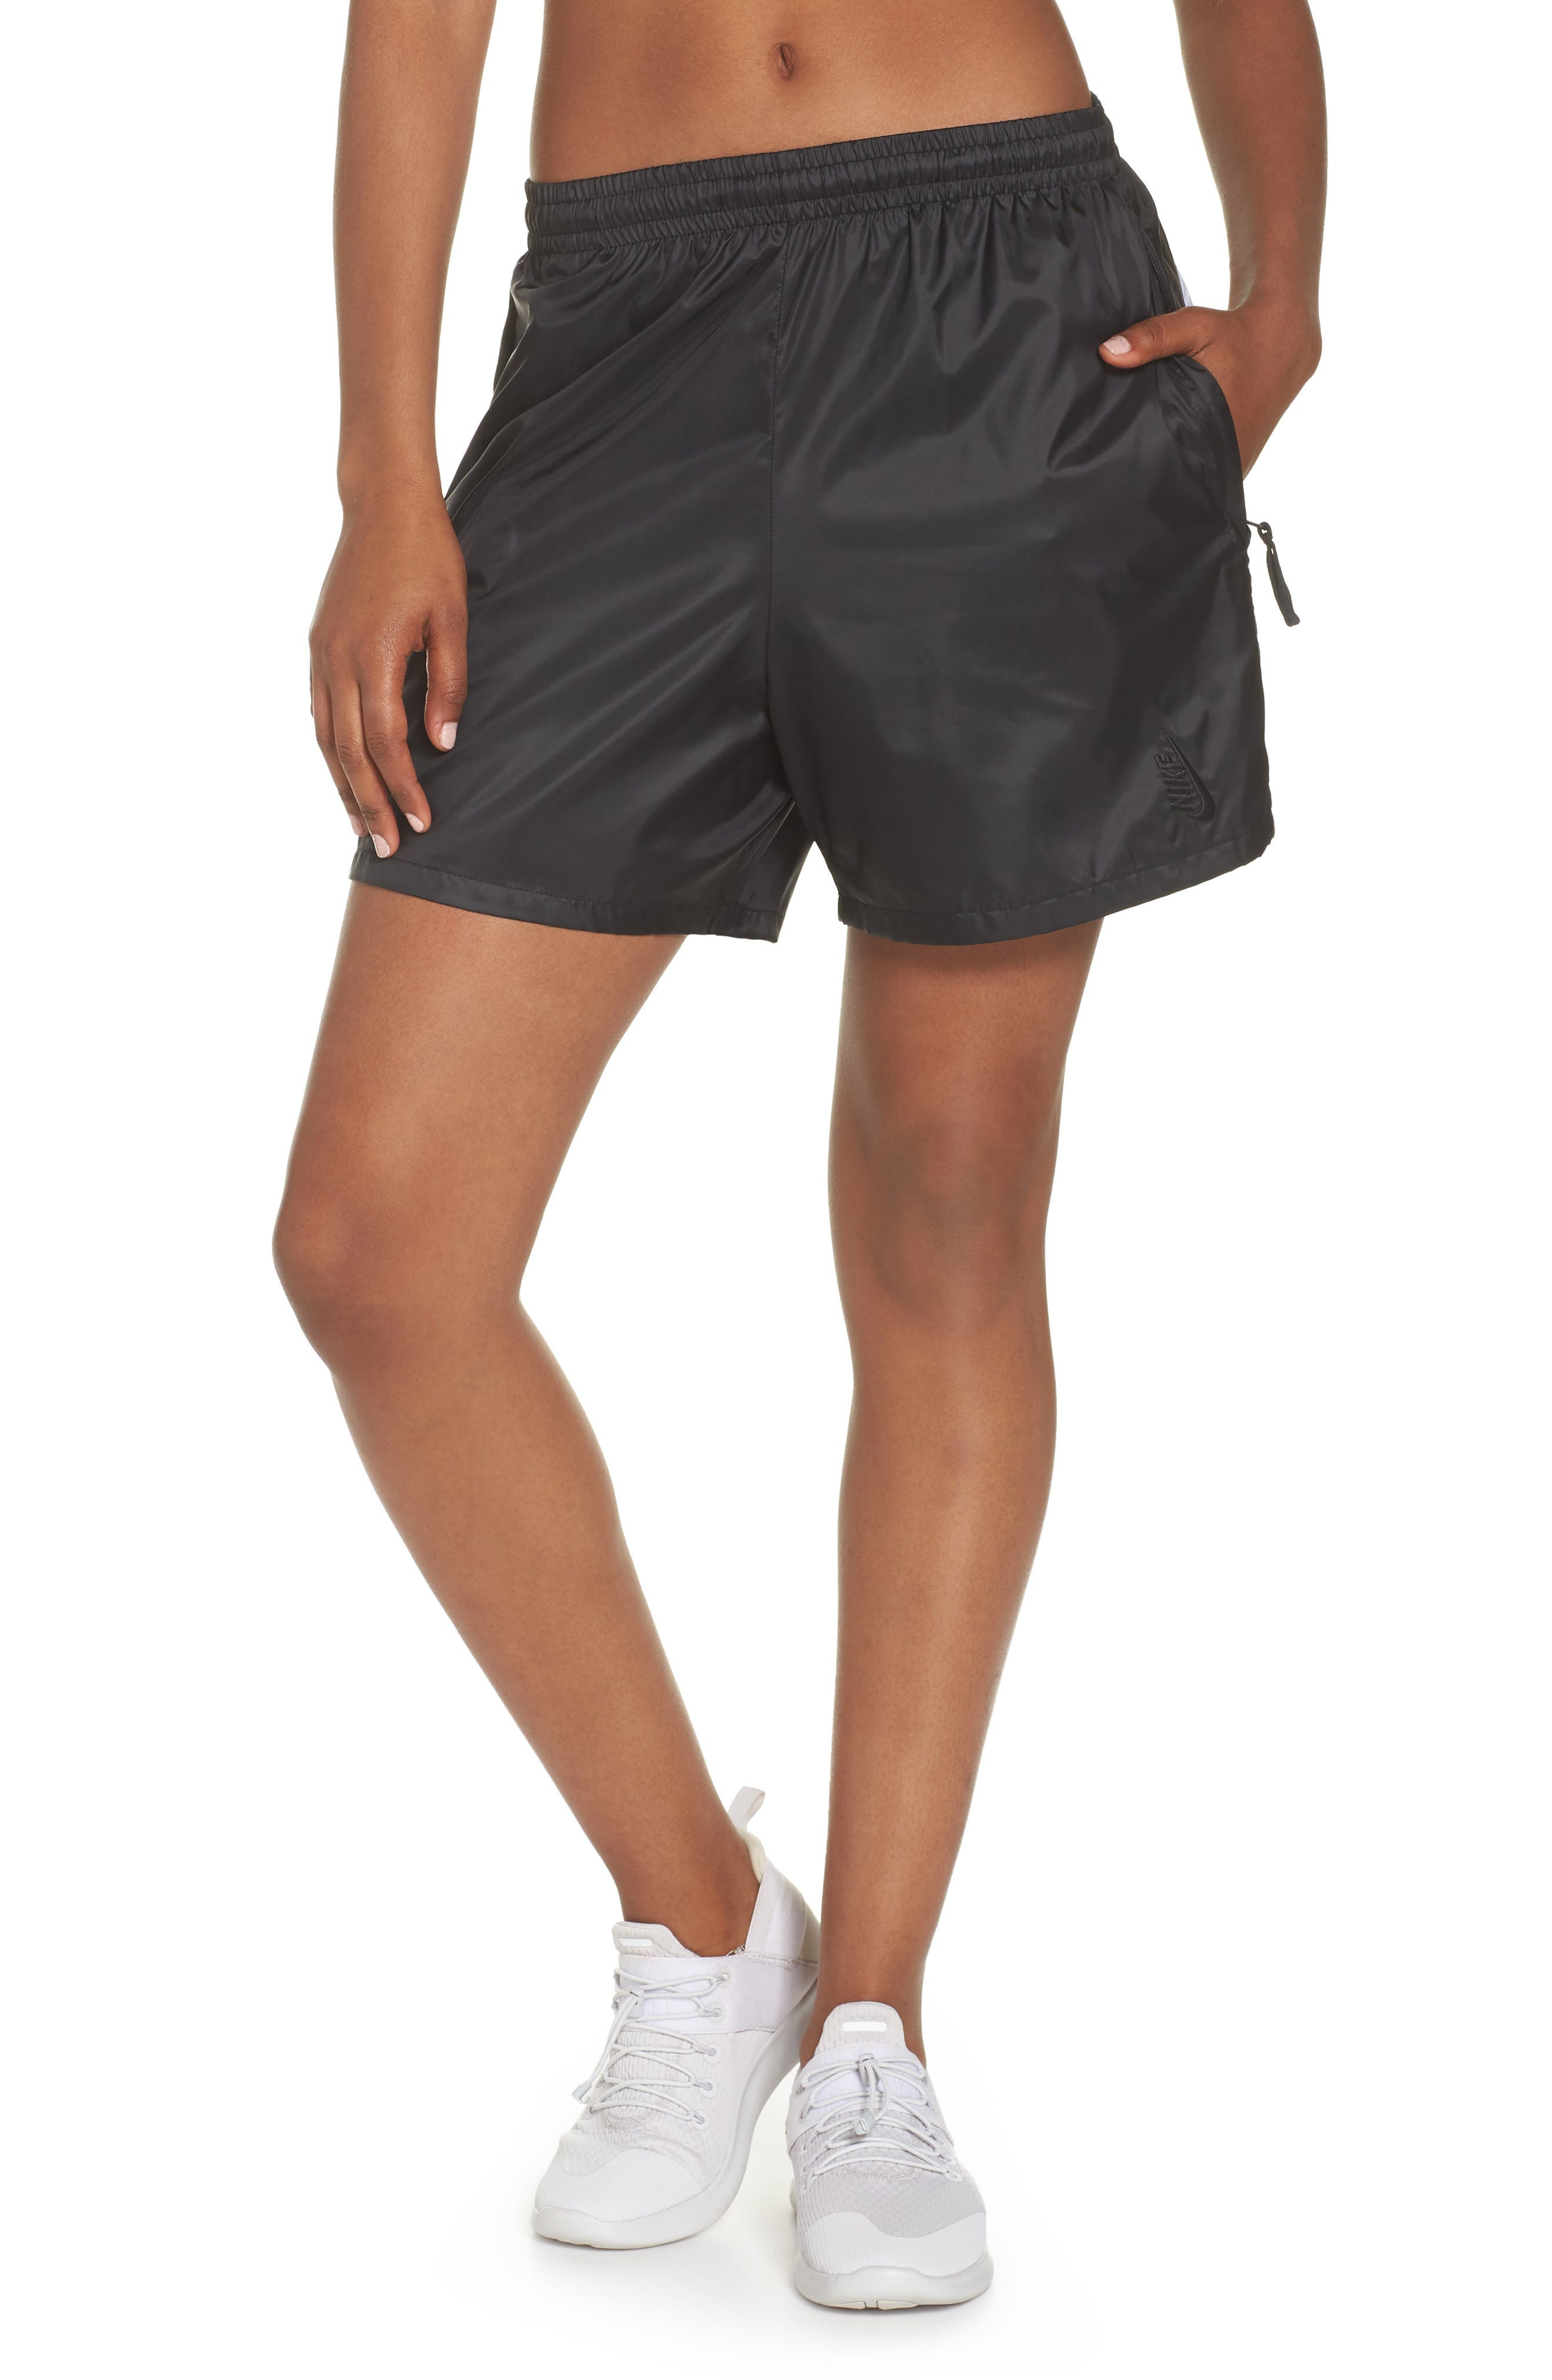 NikeLab Collection Unisex Heritage Shorts,                         Main,                         color, 010